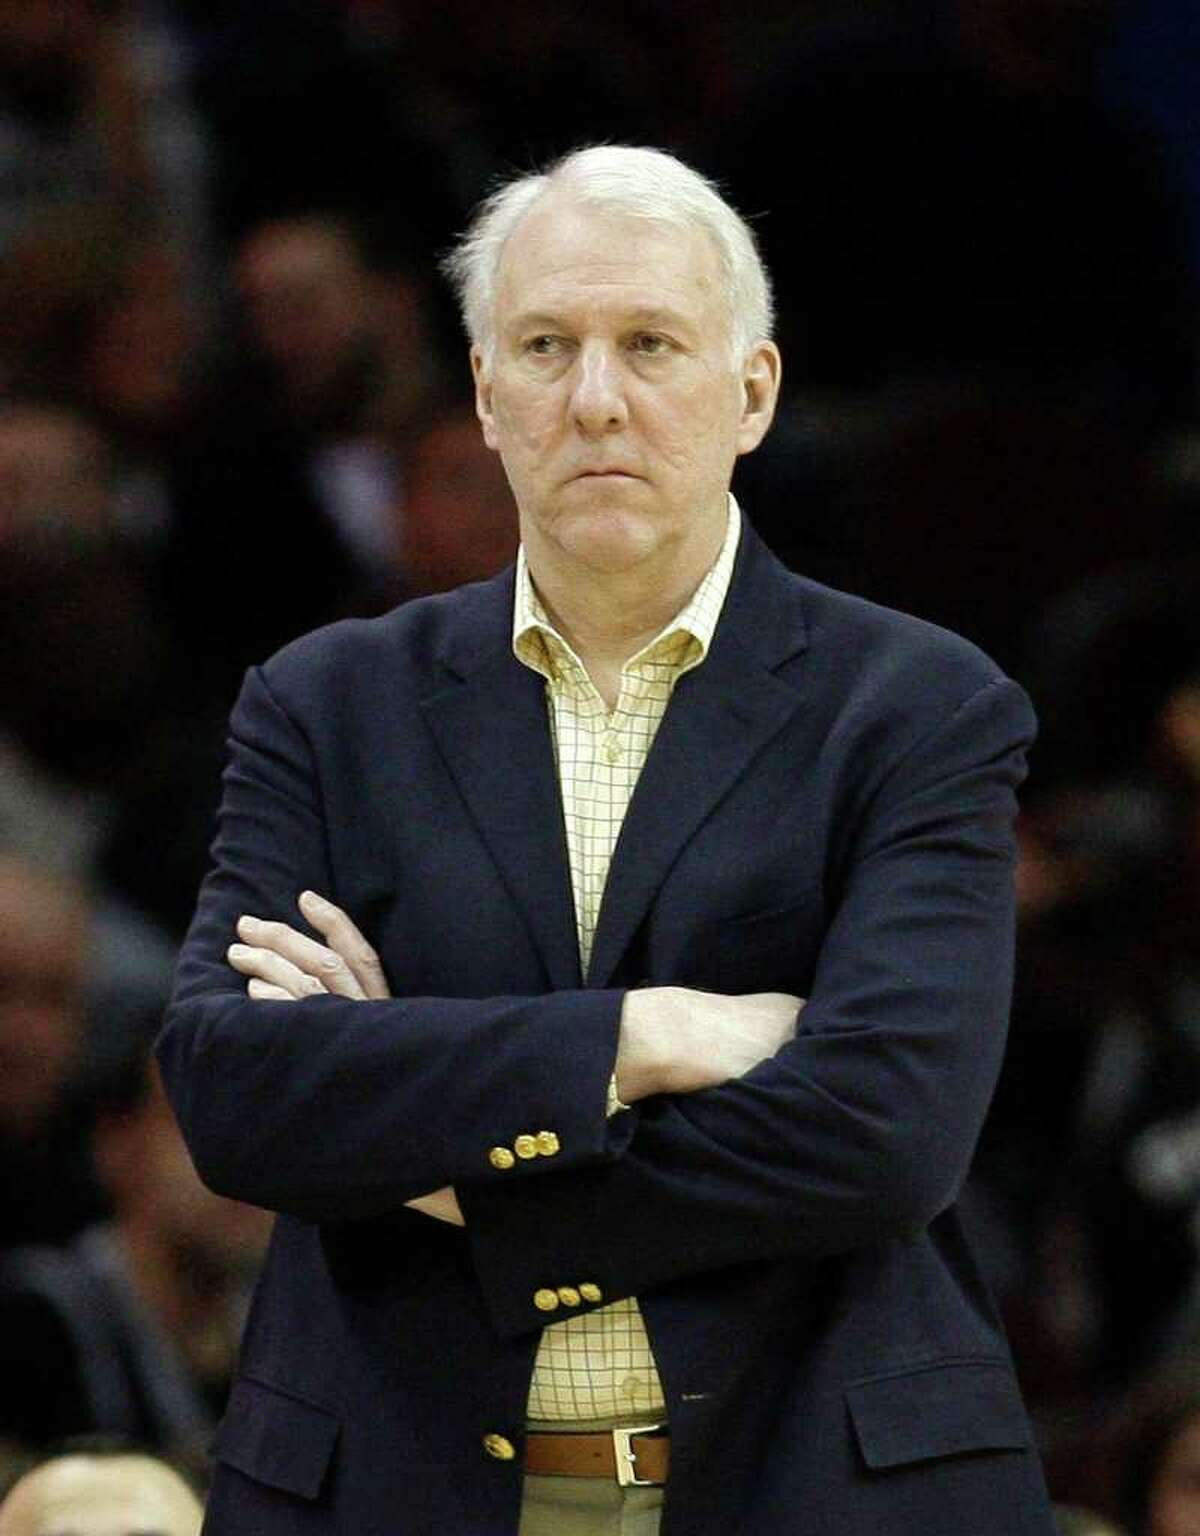 San Antonio Spurs head coach Gregg Popovich watches in the fourth quarter of an NBA basketball game against the Cleveland Cavaliers, Wednesday, March 2, 2011, in Cleveland.